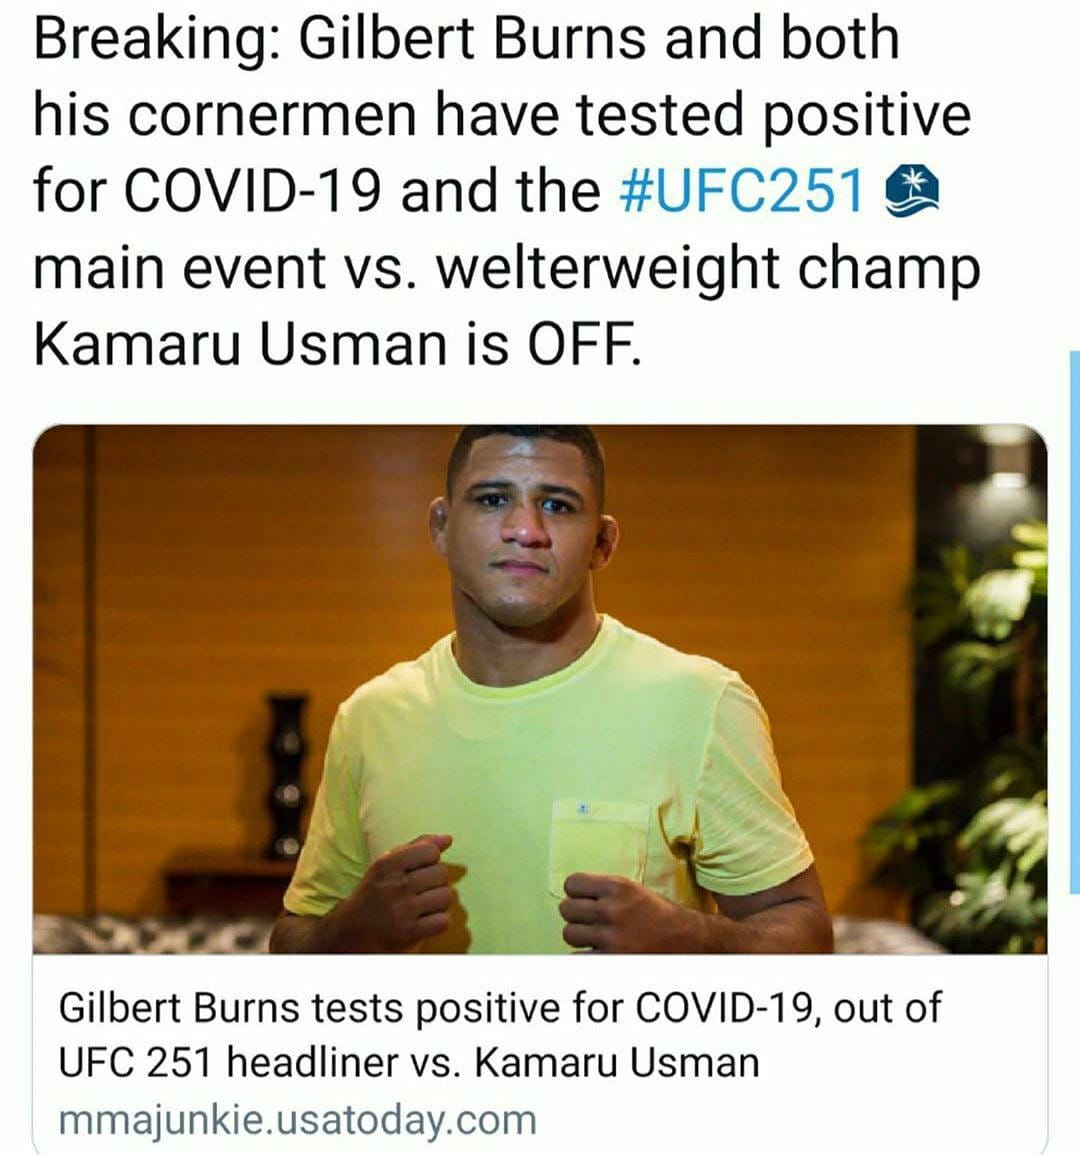 Damn... COVID can't let us have nothing... I was REALLY looking fwd to these teammates scrapping against each other. . . . #ufc251 #durinho #gilbertburns #ufc #bjjfortheculture https://t.co/bkNSvx7Y5c